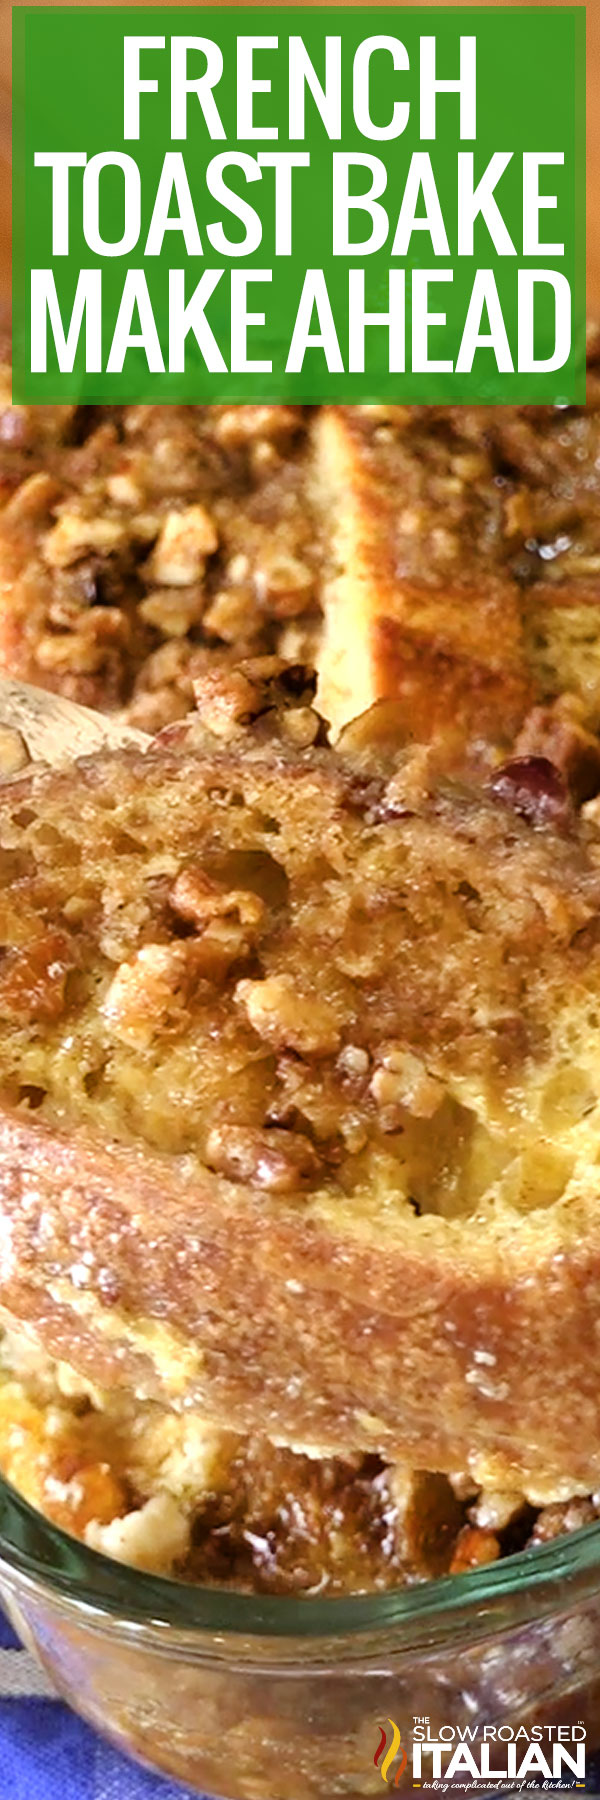 Title text (shown in a casserole dish): French Toast Bake Make Ahead Recipe